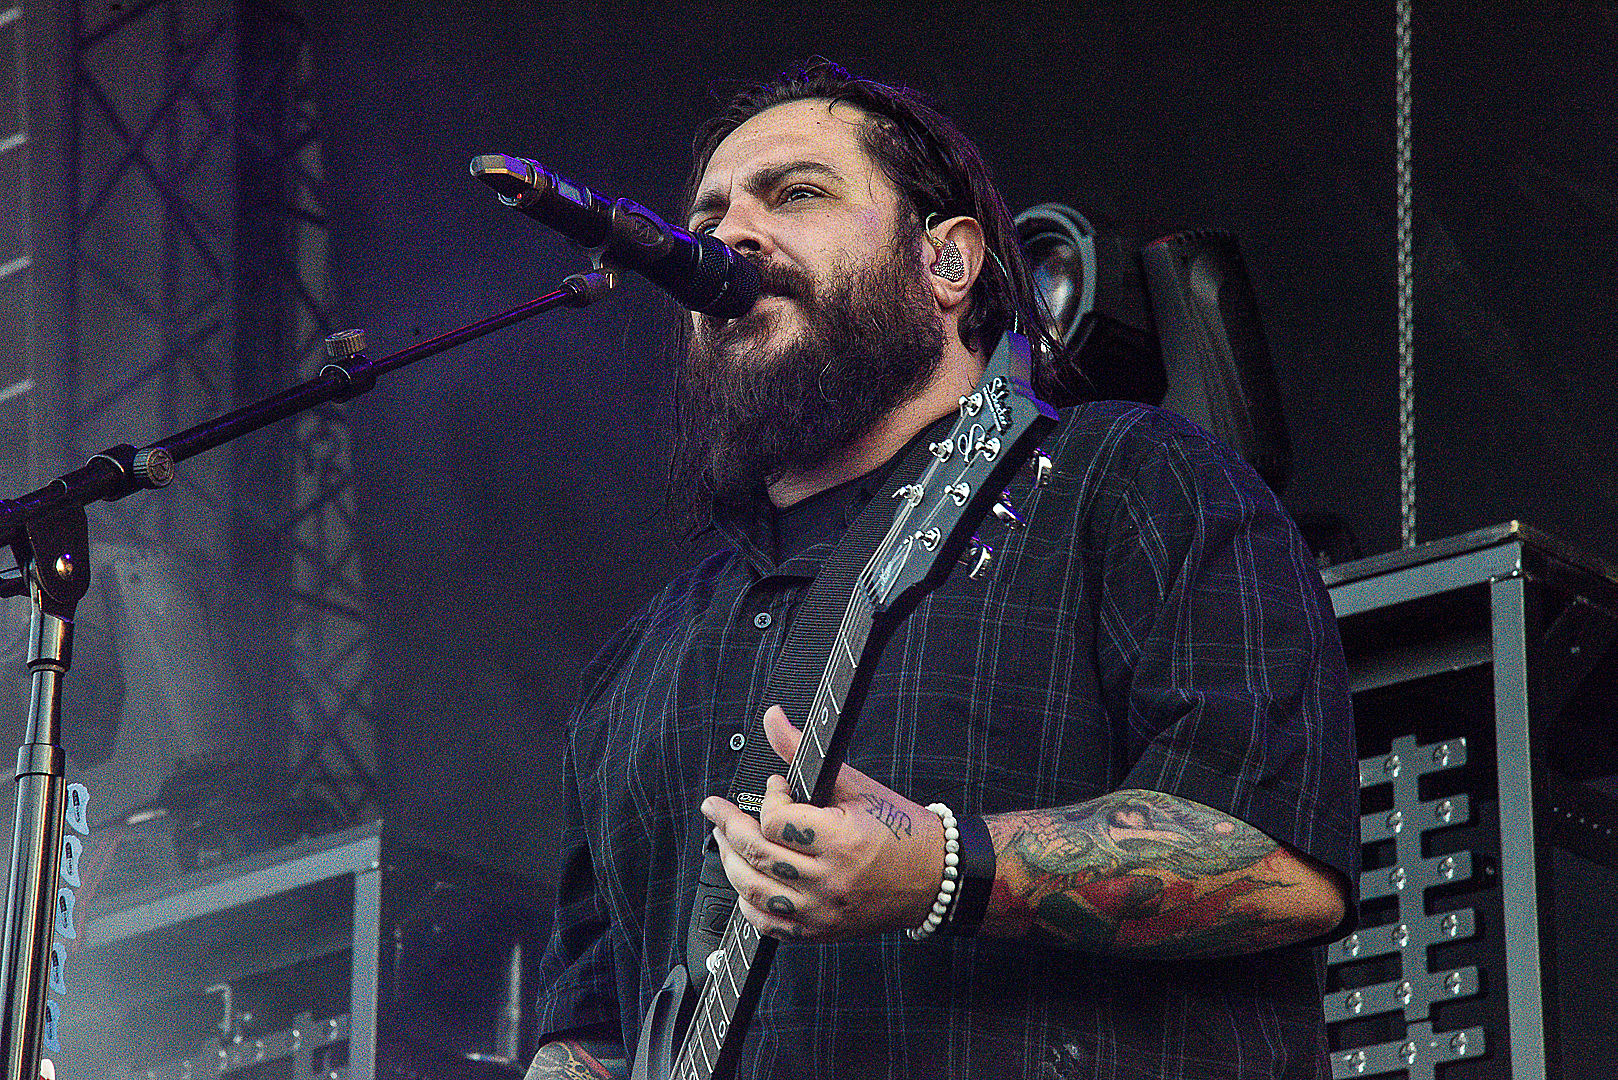 Shaun Morgan Doesn't Want to Return to Pre-COVID Tour Cycle